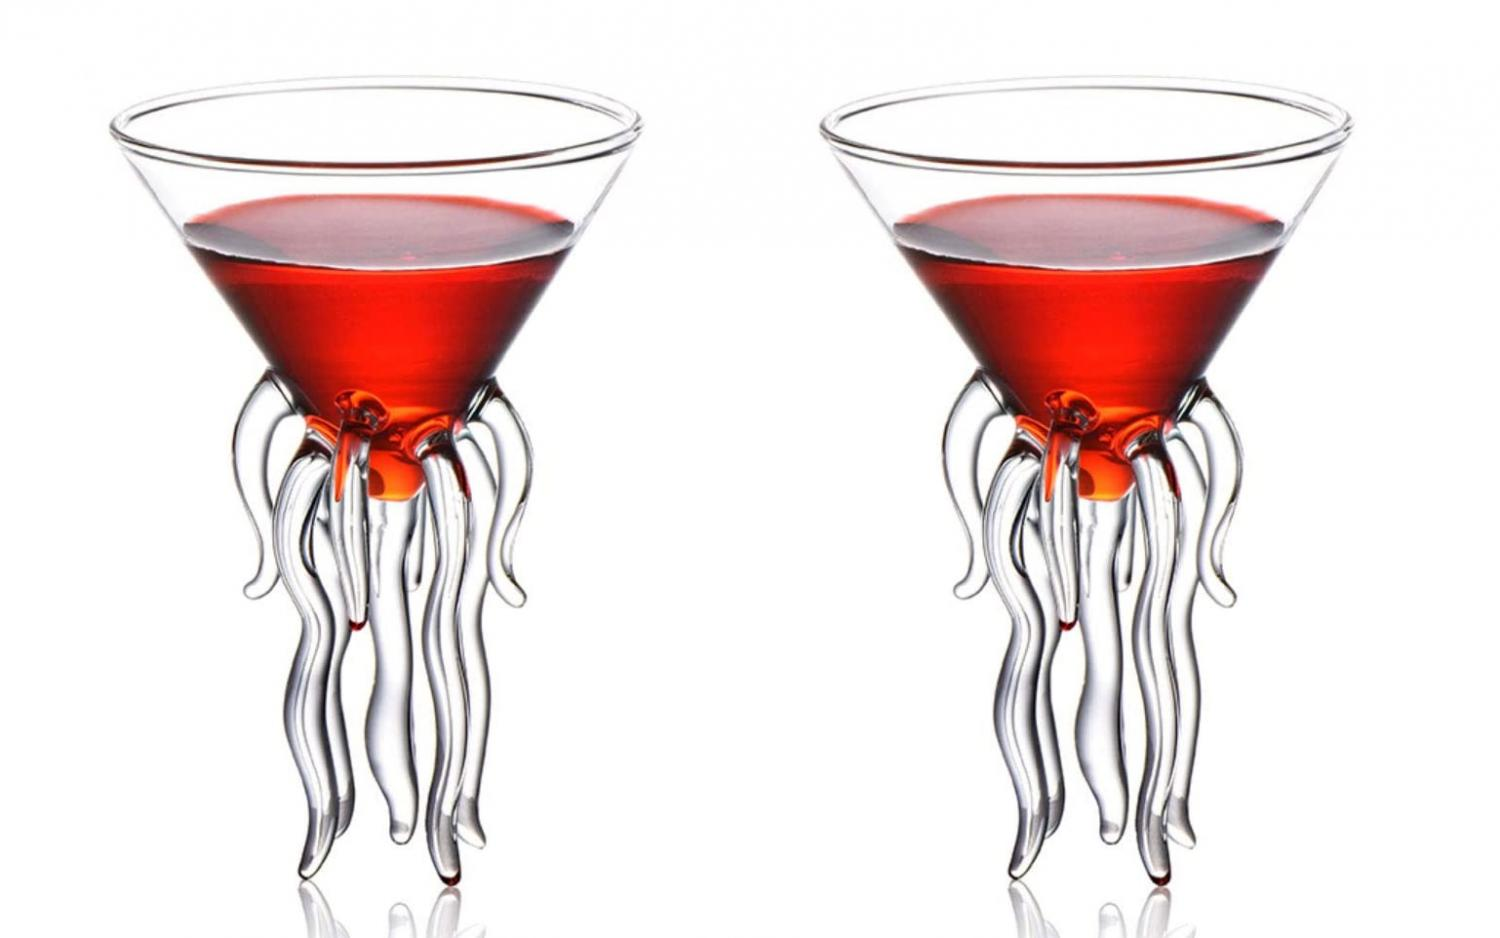 Jellyfish martini glasses - Cocktail Glasses Made To Look Like a Jellyfish/octopus